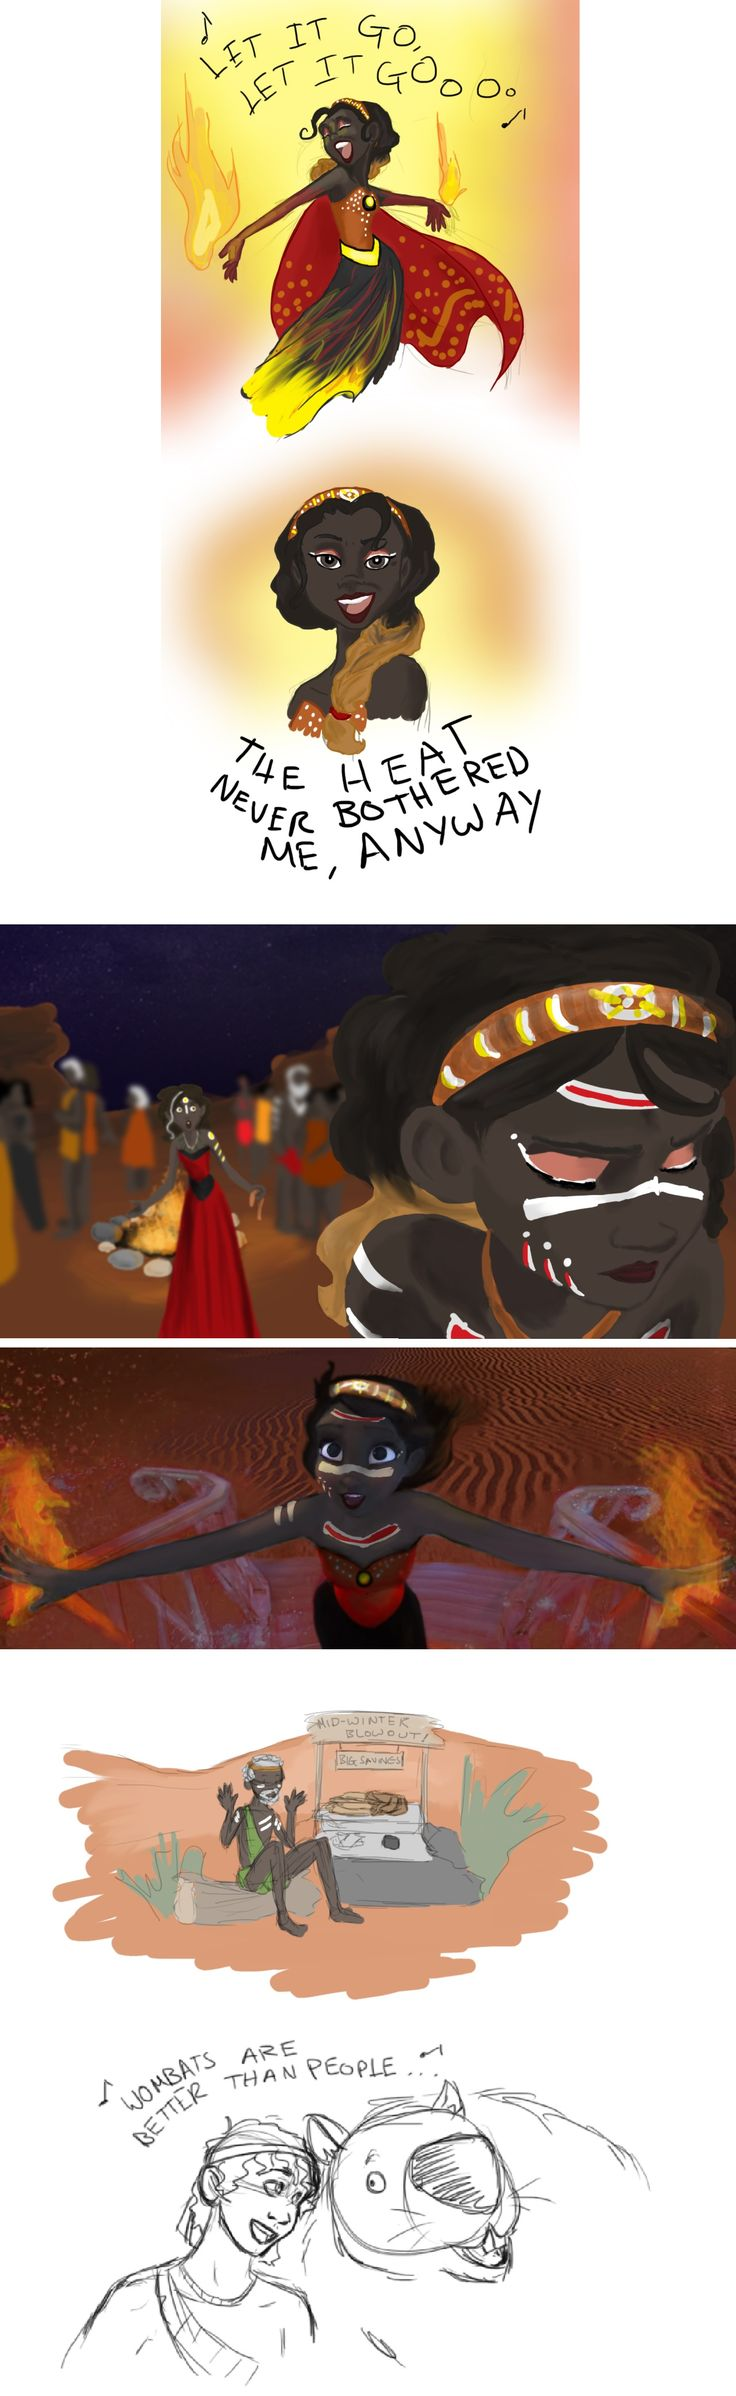 Melted: a Frozen story bend. An interesting idea that started as a joke about the heat wave in Australia when the movie came out and how Elsa's ice power would have been welcomed there. The story of Frozen that takes place in Australia, but Elsa's power is over fire instead of ice, and everyone is Aboriginal instead of Caucasian.